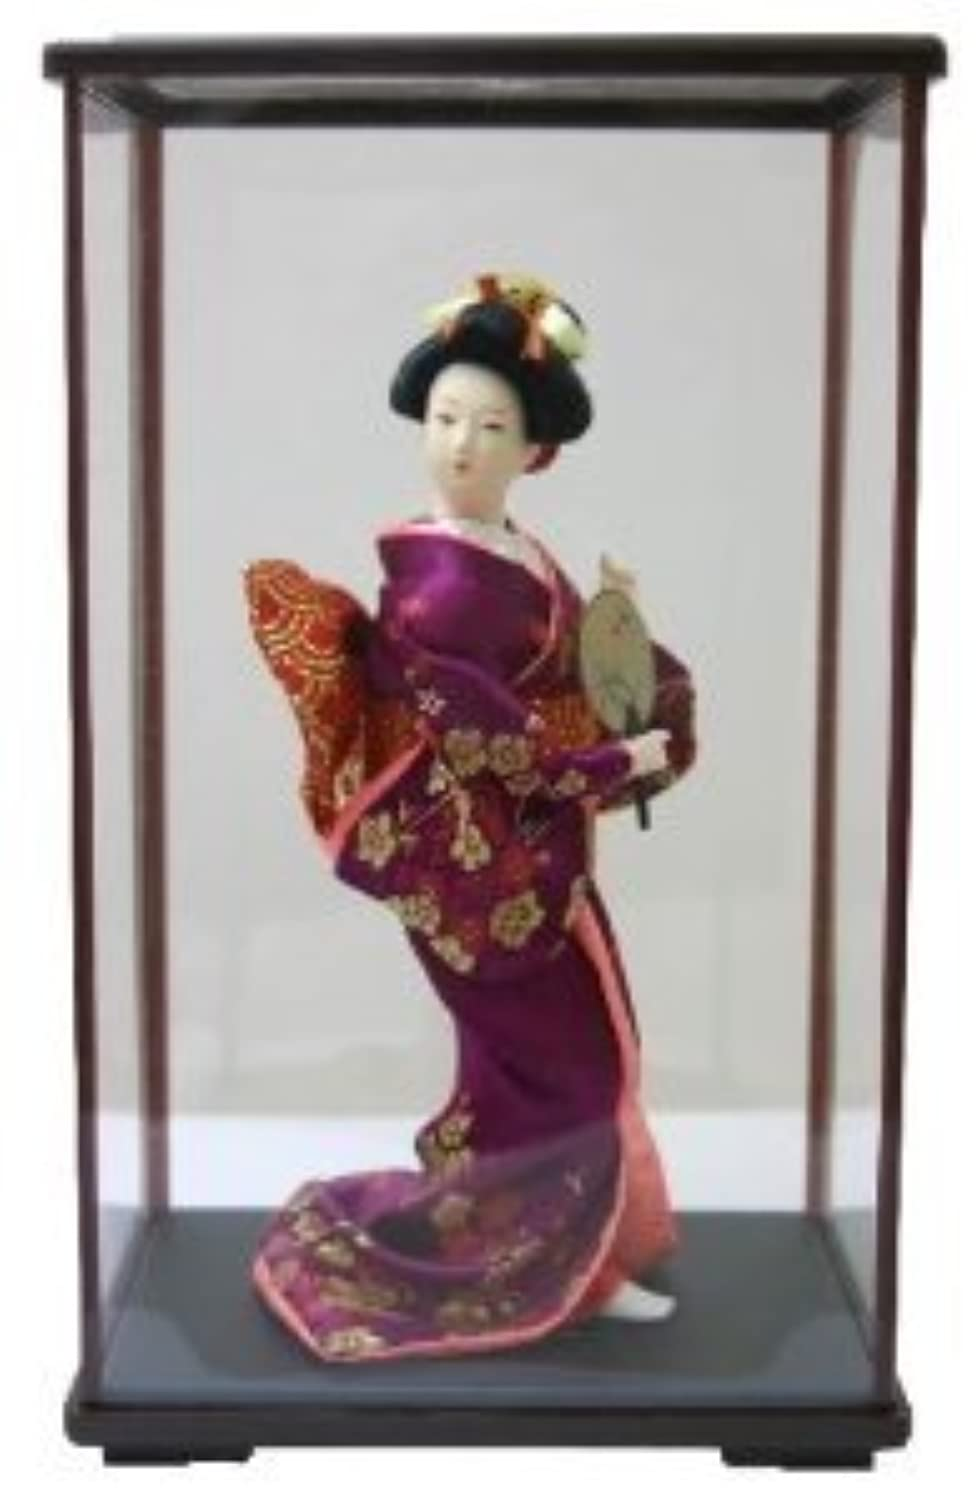 日本人形ケース入り 9インチ No.9-B 扇子 9inch Japanese Doll in Acrylic Case, Geisha Girl with Fan in carton box